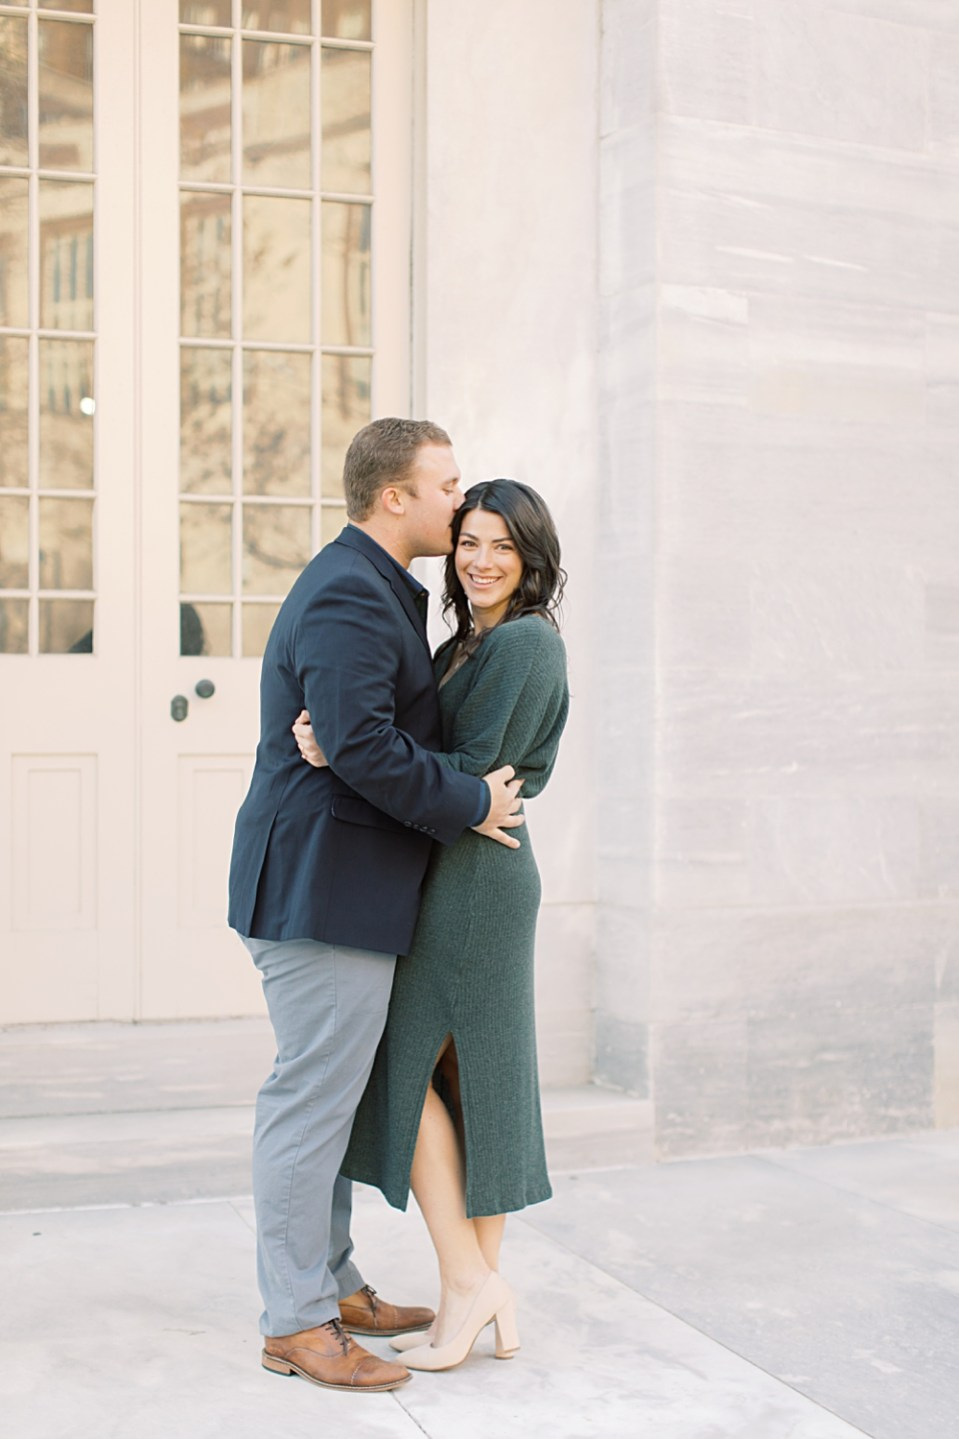 Couple at Merchant's Exchange Building | Engagement Photos